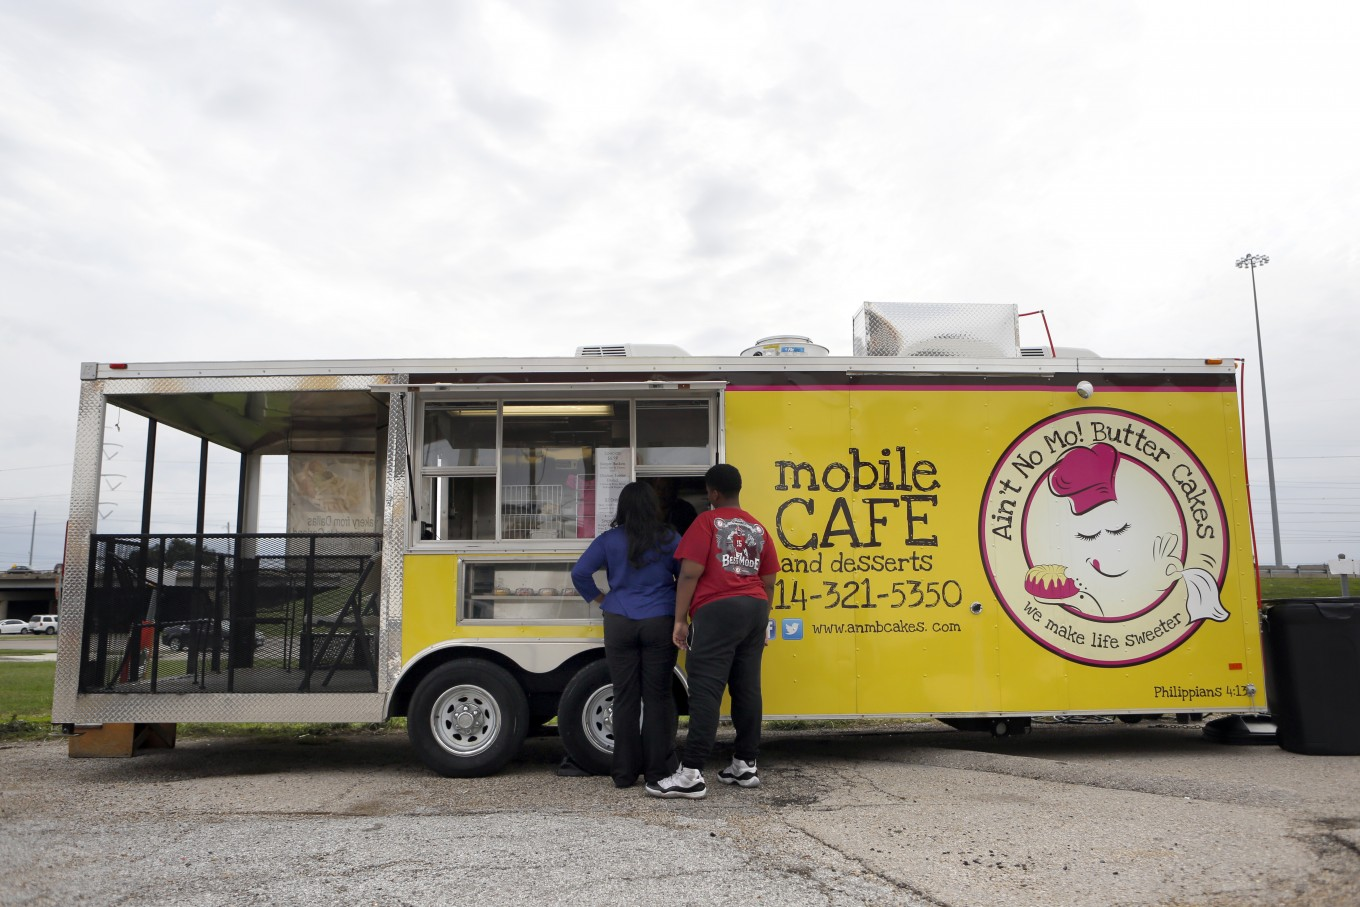 Customers Tara Hairston and son Tyler Kennedy, 14, order lunch at Quincy and Sheri Brown's food truck, Ain't No Mo! Butter Cakes.